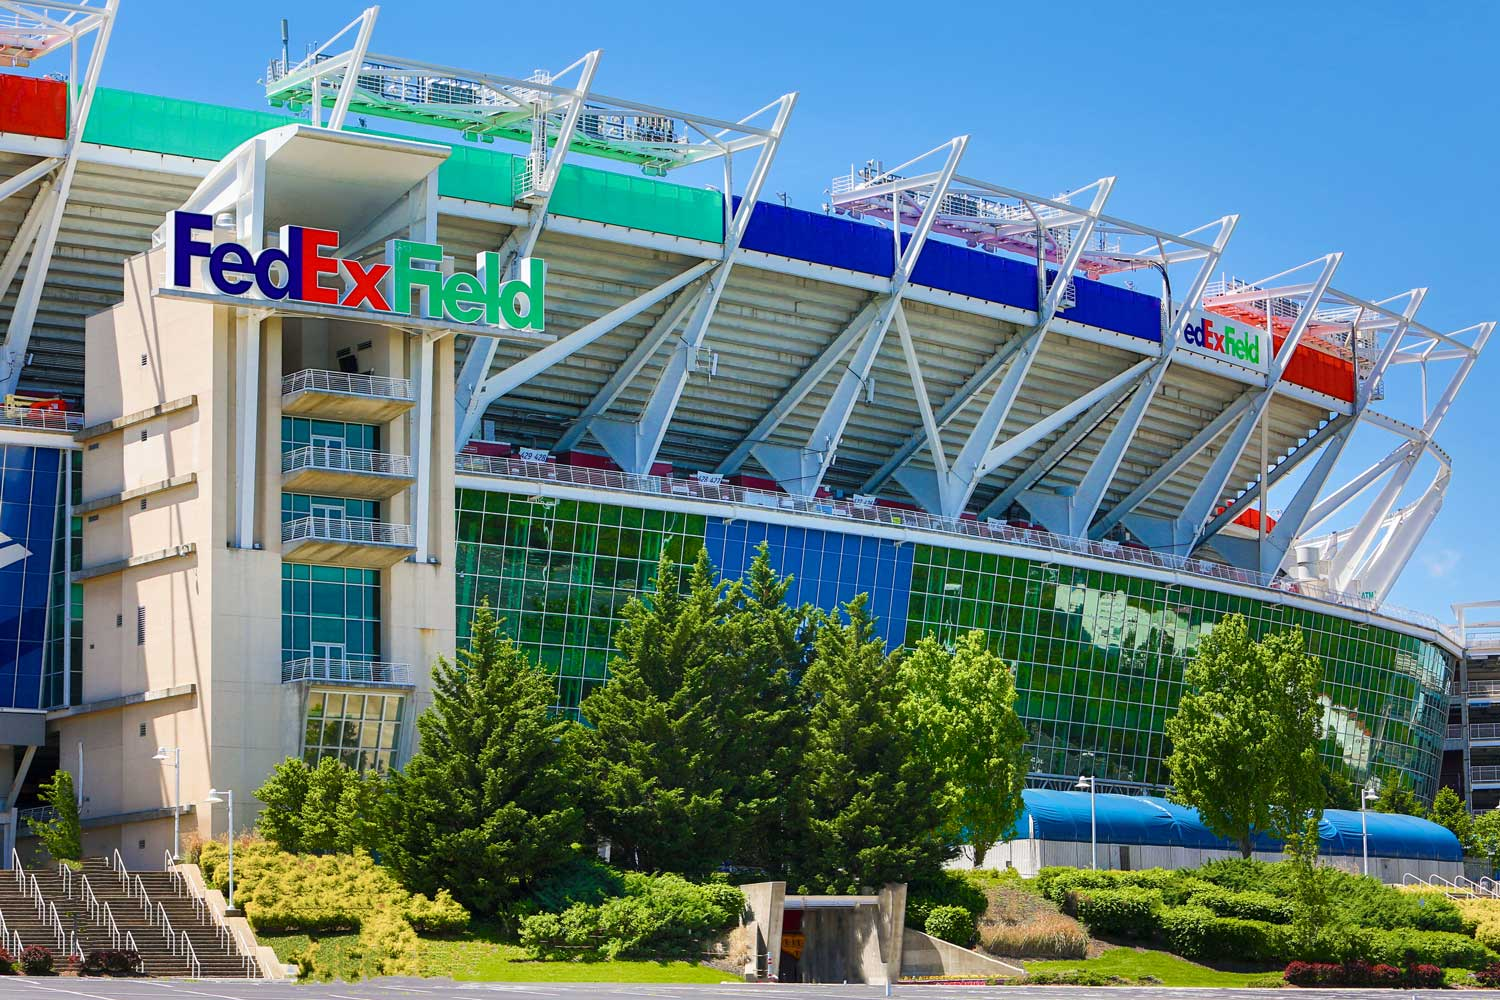 FedEx Field is 10 minutes from Carrollon Manor Apartments in New Carrollton, MD